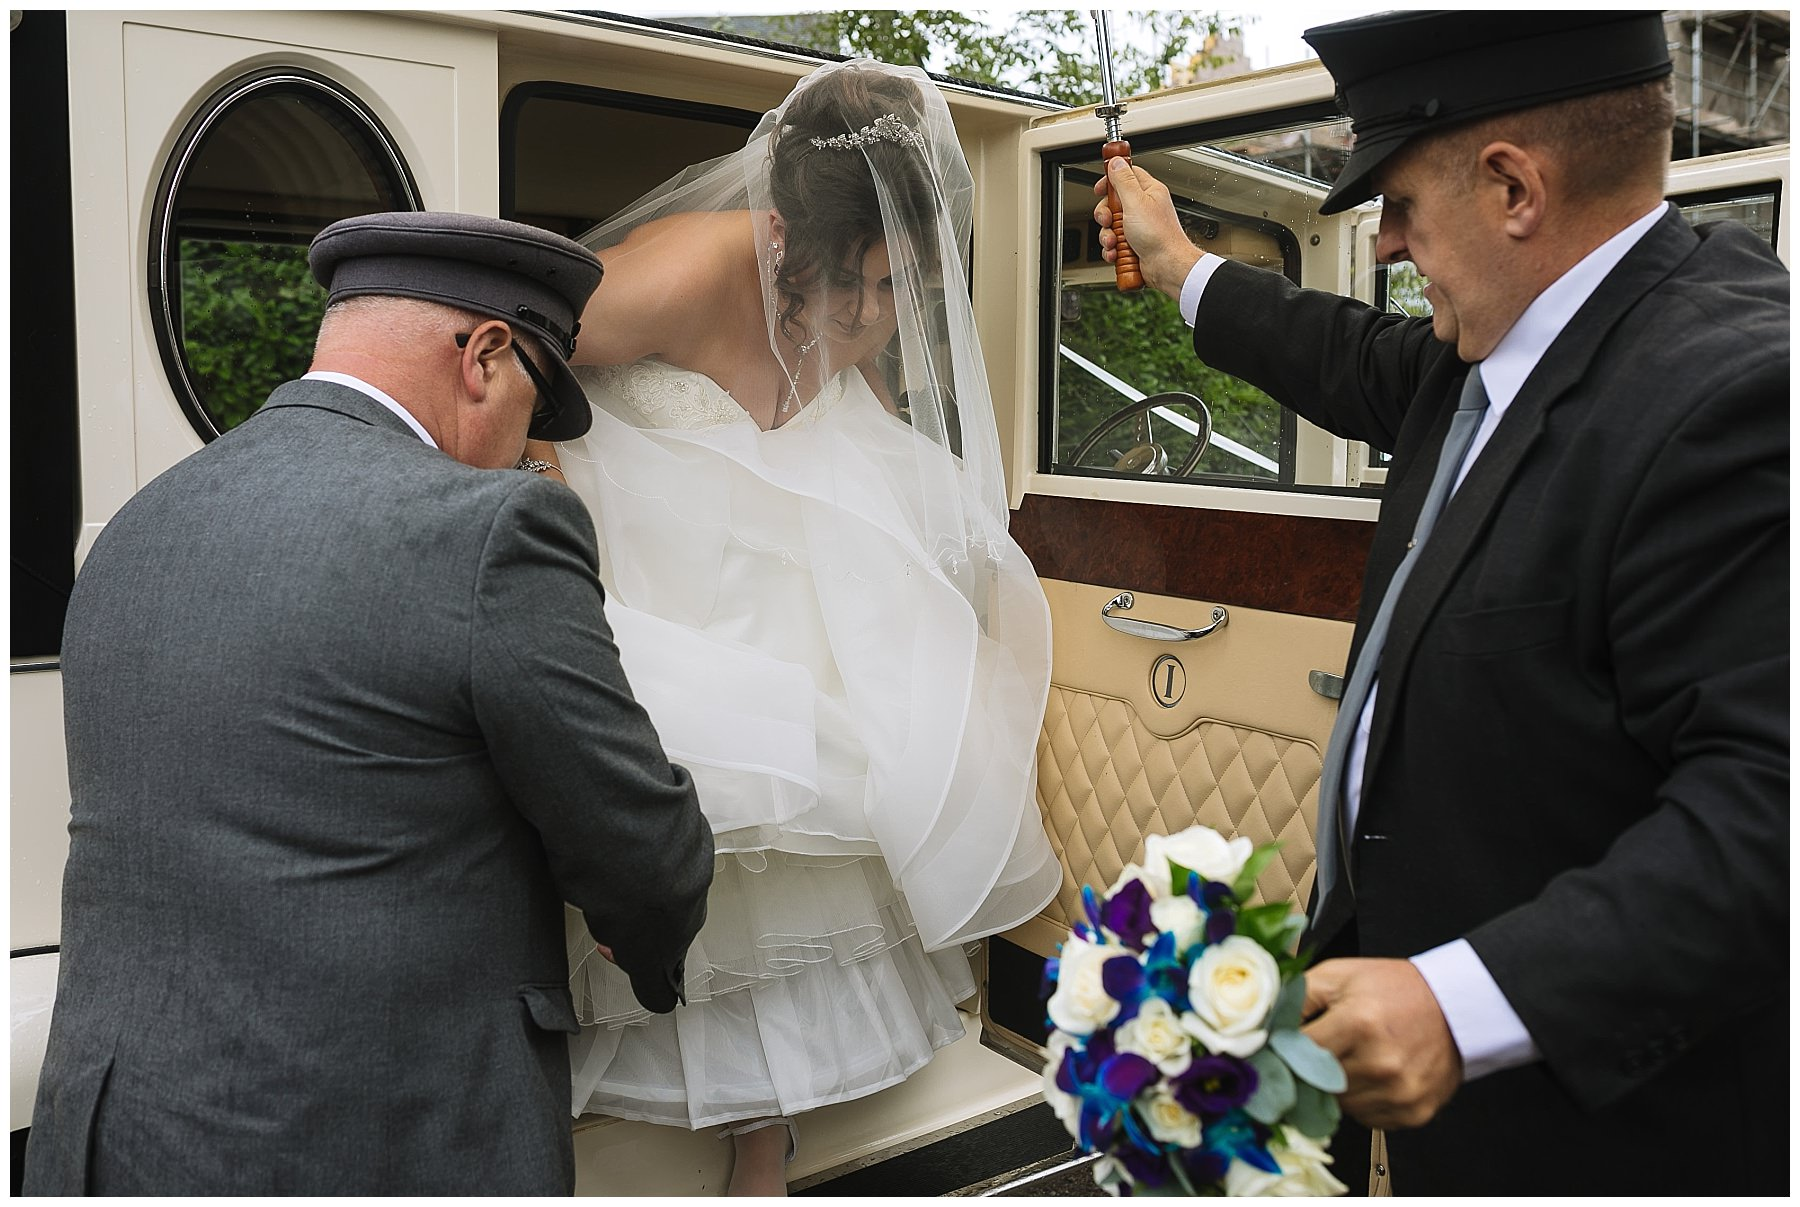 bride arrives at church in classic wedding car